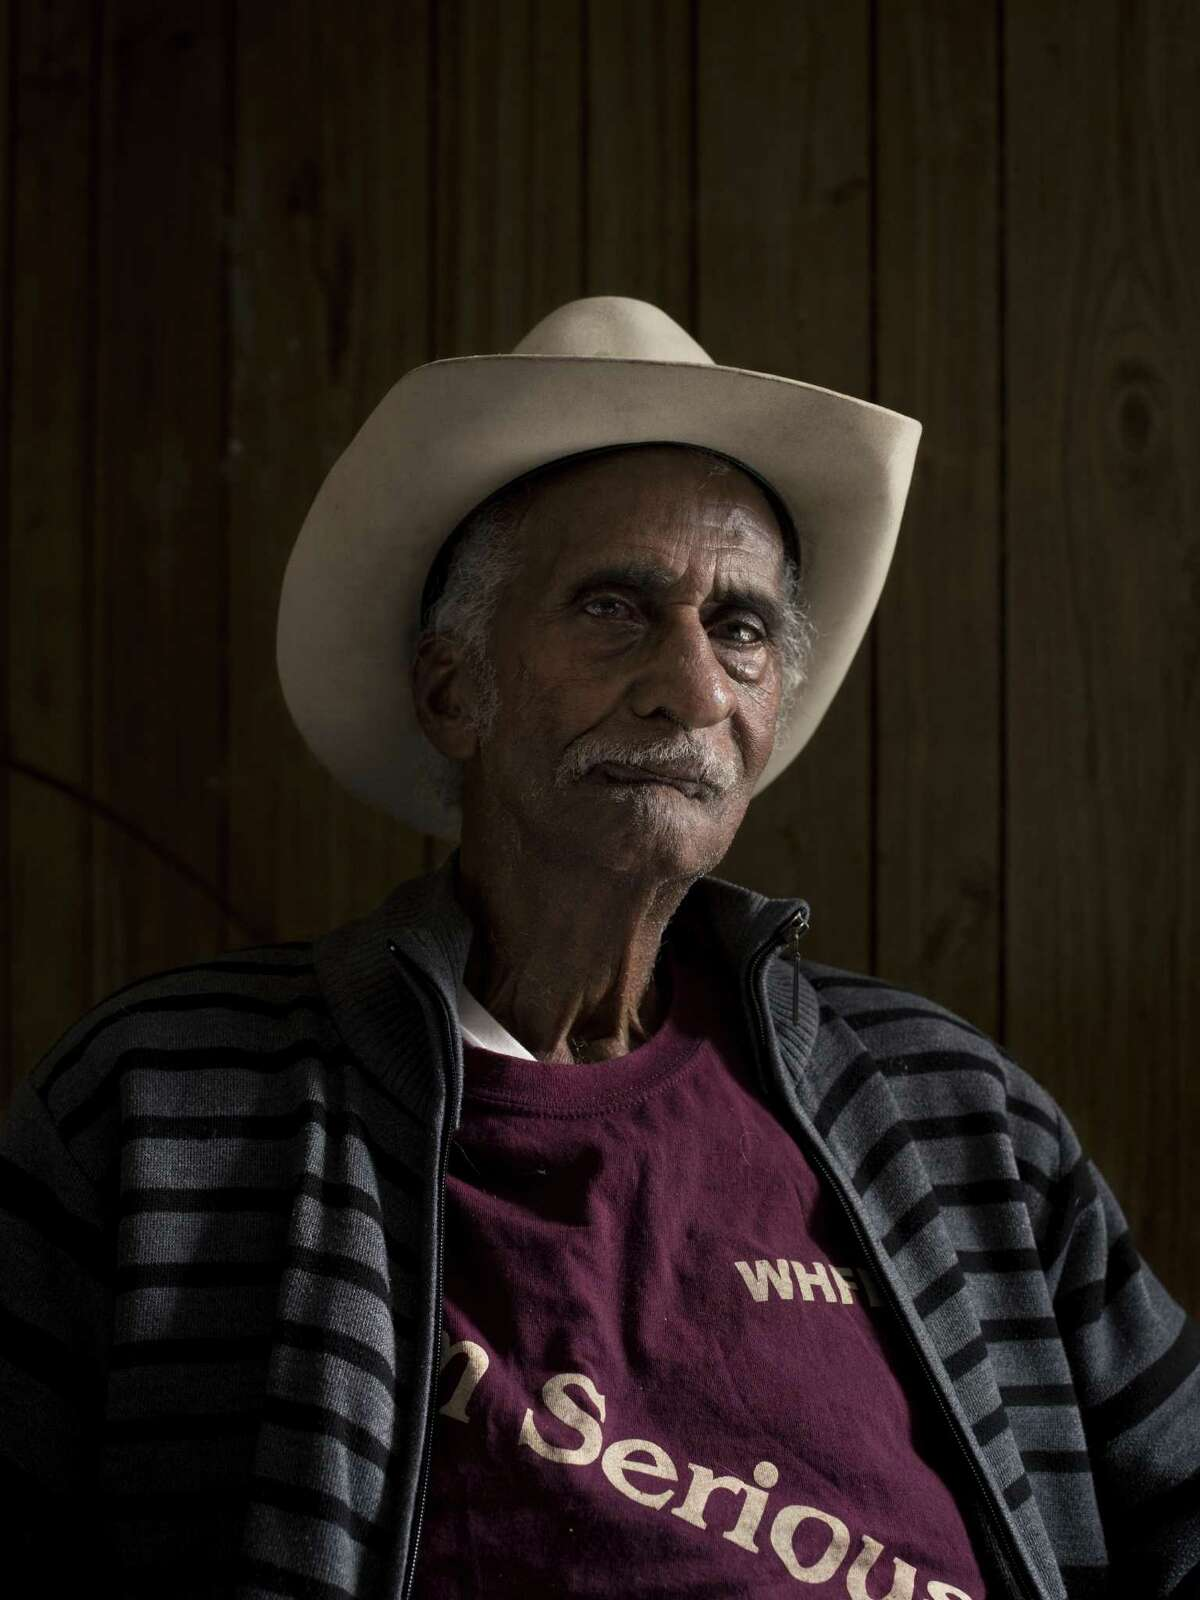 Walter Rodgers Jr., 85, poses for a portrait in his home, the first house on the Martin Luther King March's route in San Antonio, Texas on Monday, January 9, 2017. Rodgers said that he has been watching the march from the tailgate of his pickup truck for many years.